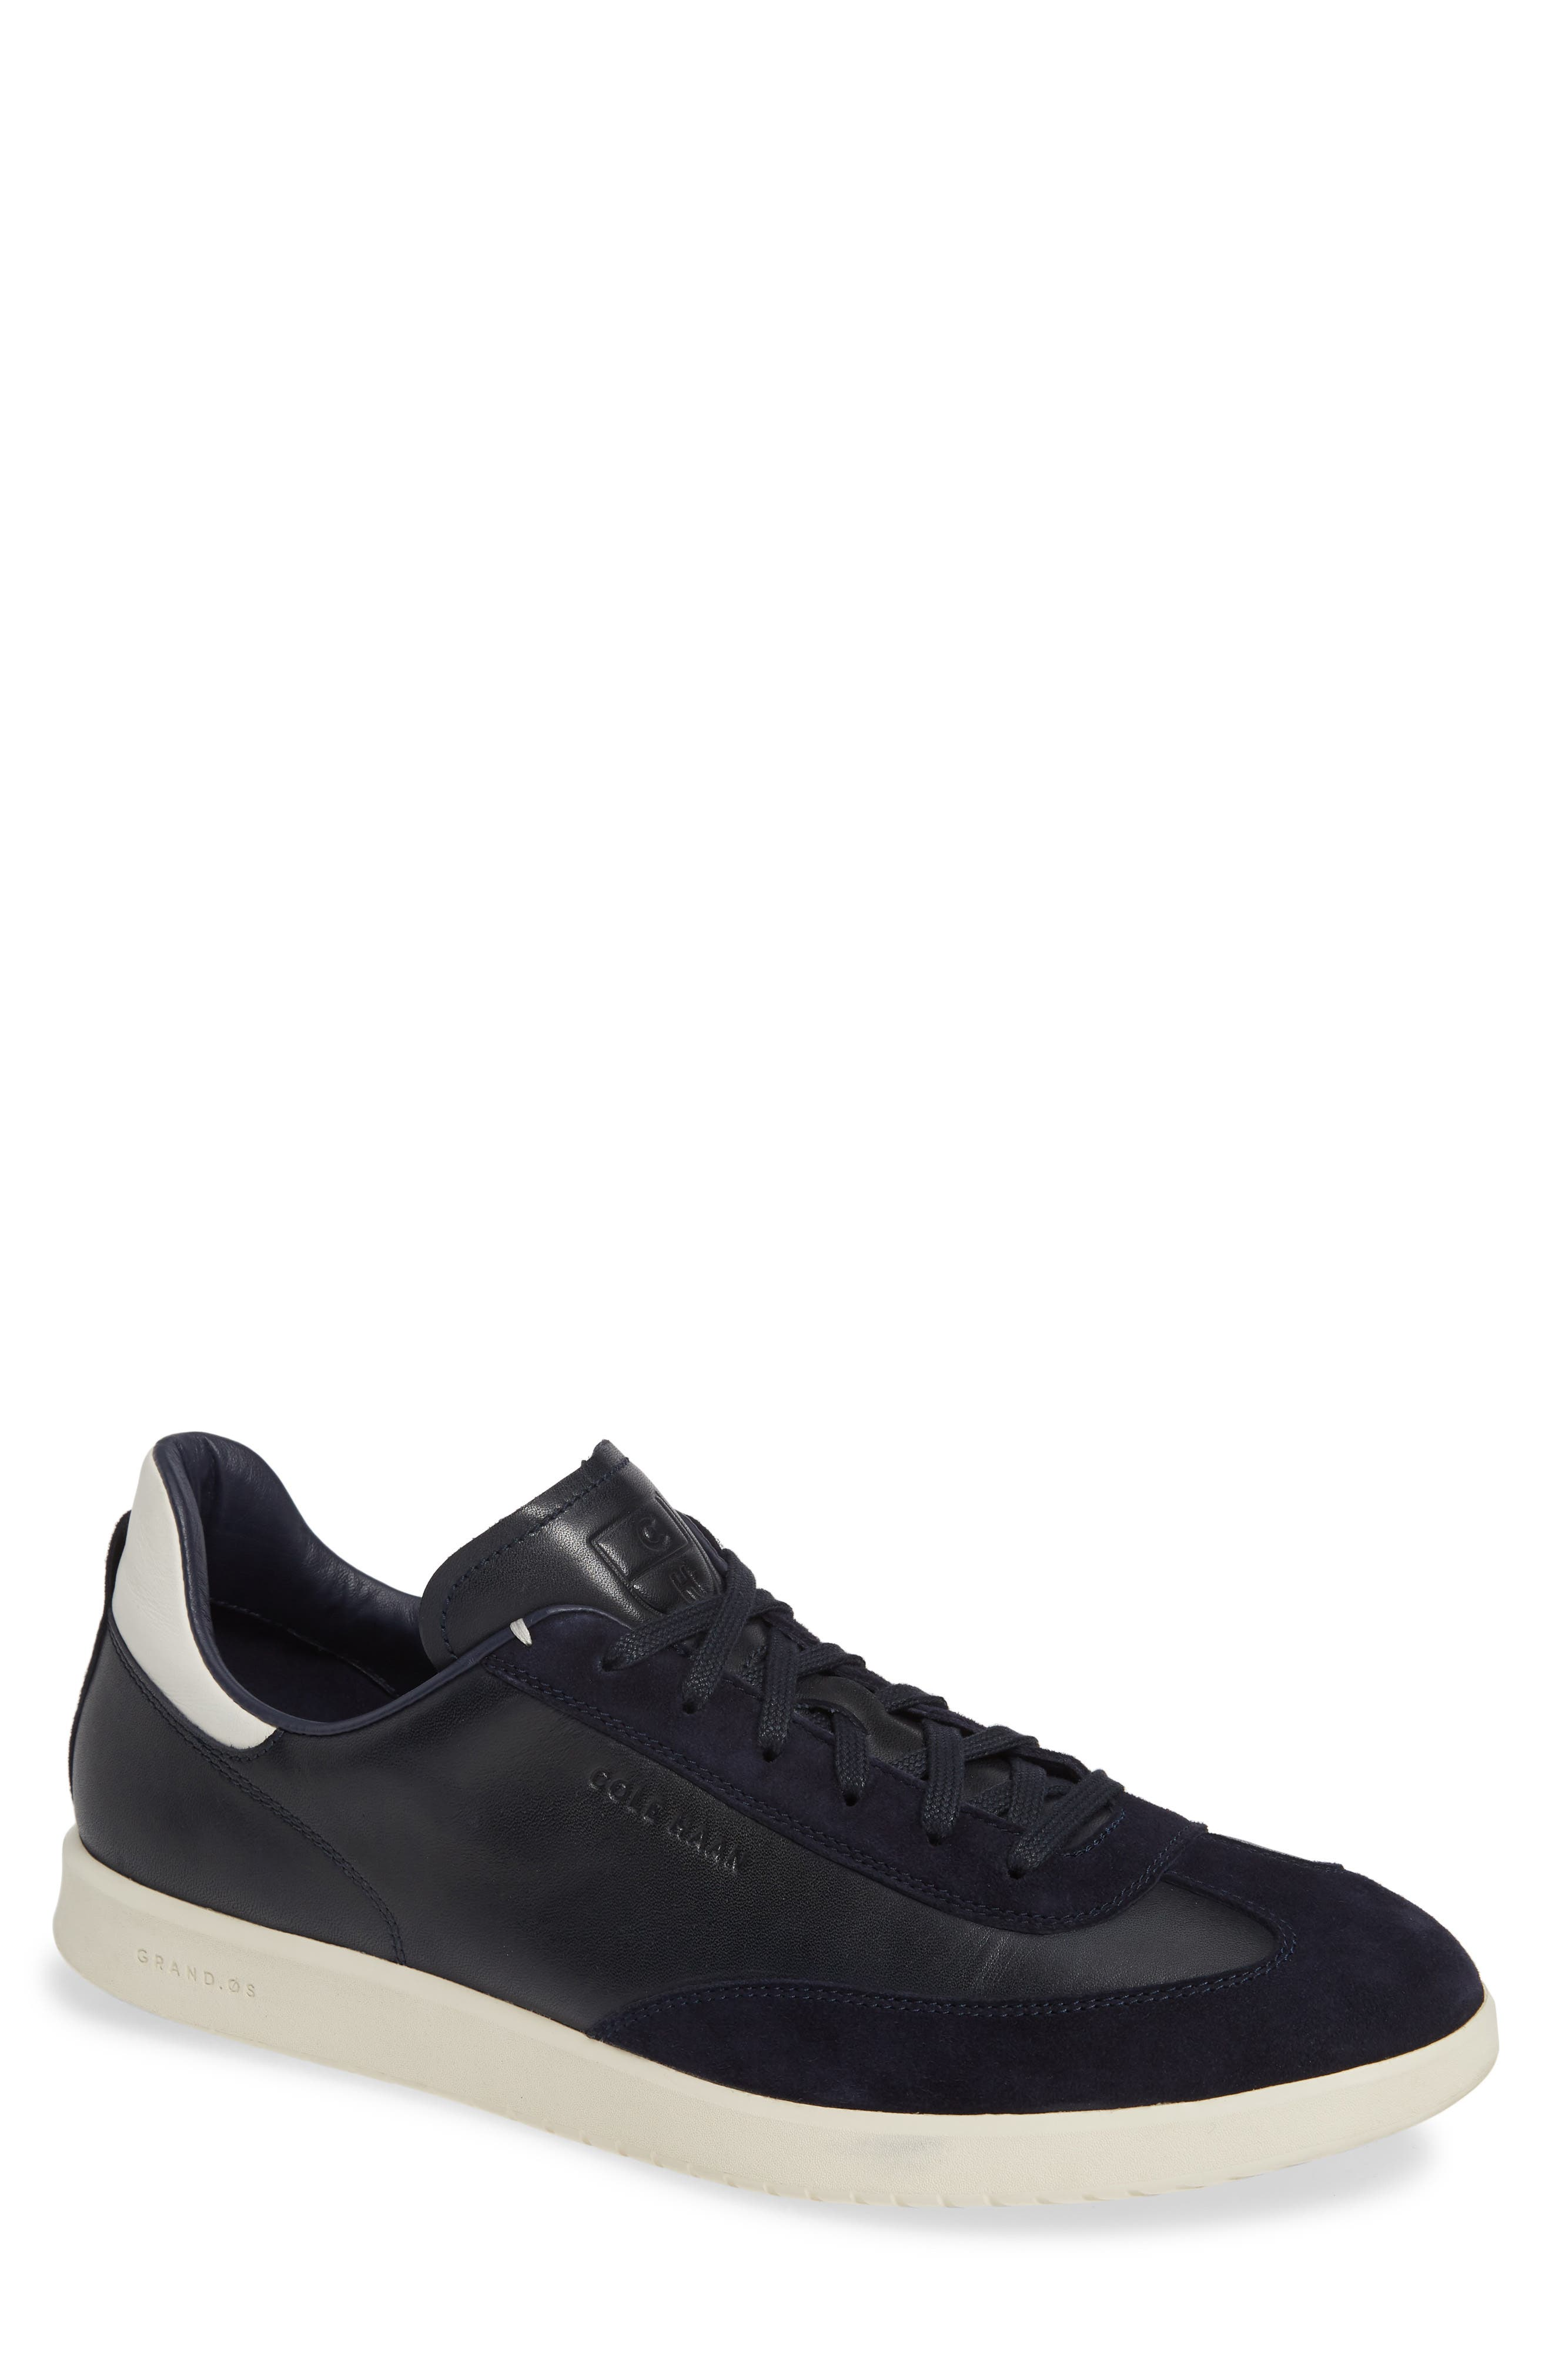 COLE HAAN, GrandPro Turf Sneaker, Main thumbnail 1, color, NAVY INK LEATHER